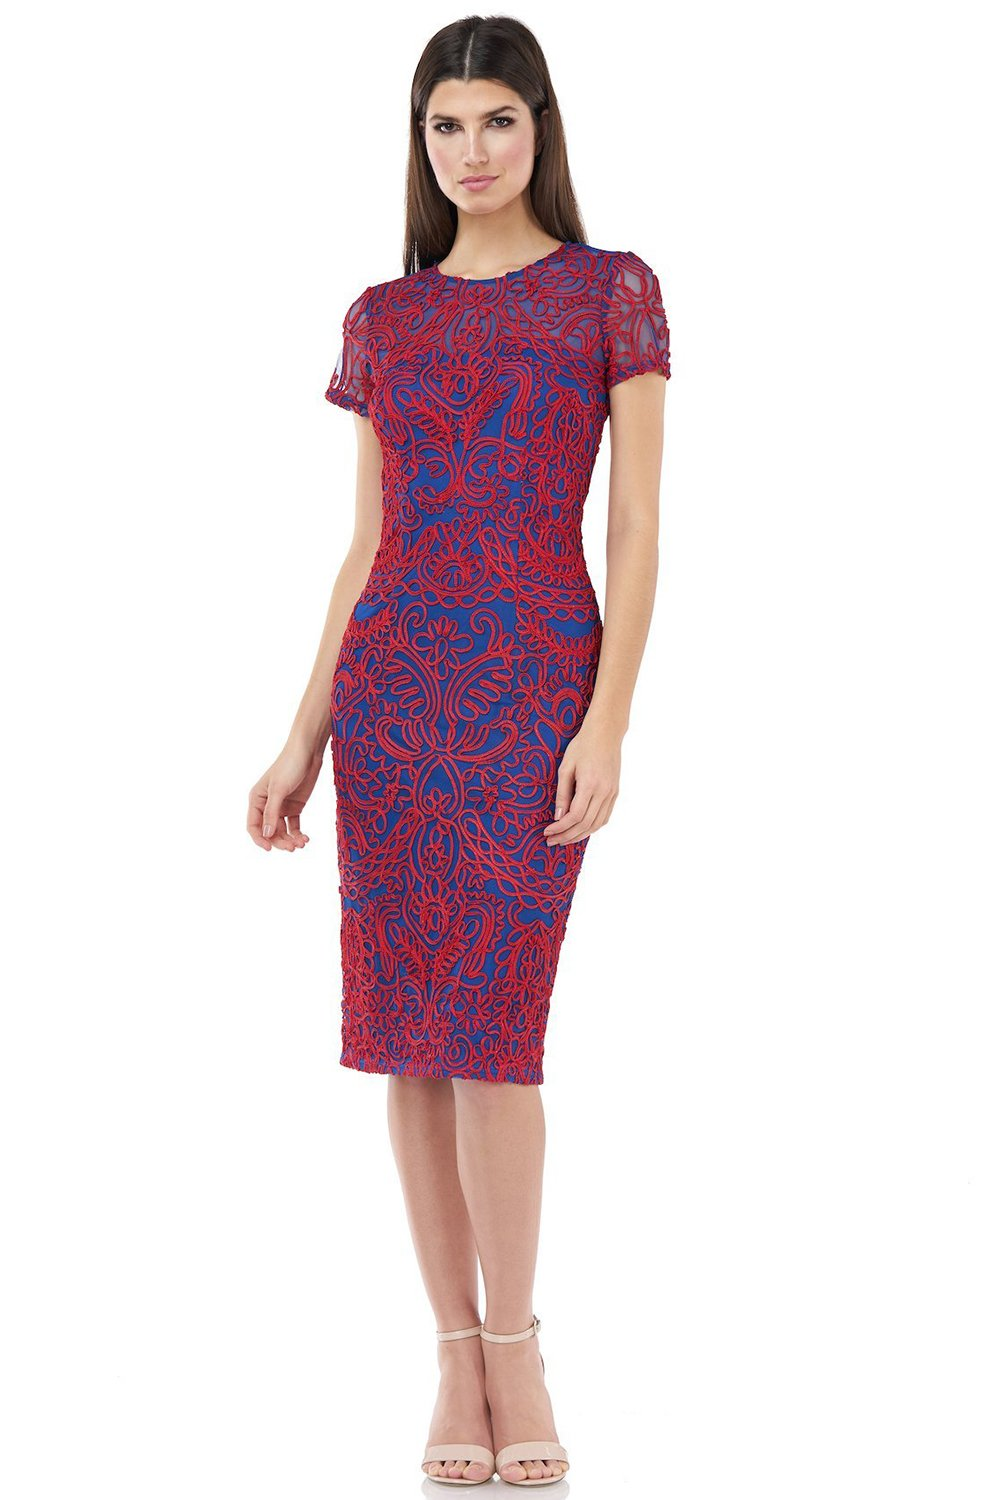 JS Collections - 866902 Embroidered Jewel Cocktail Dress In Red and Blue